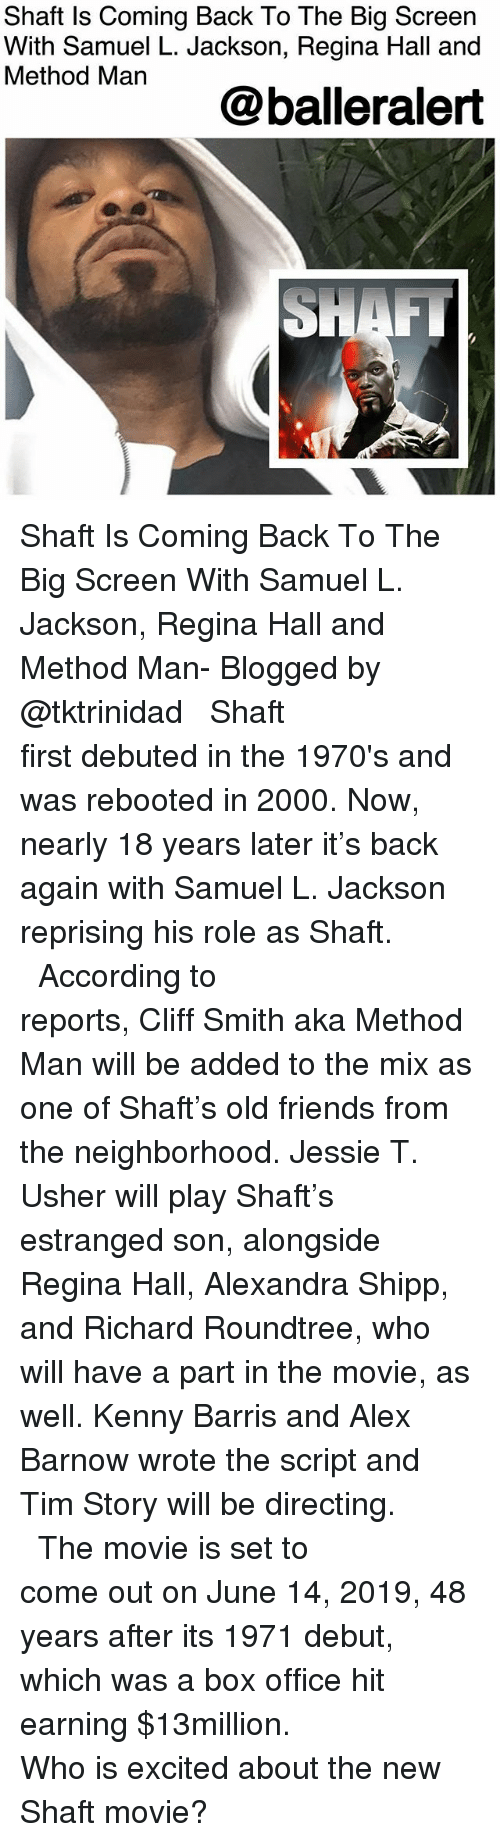 debuted: Shaft ls Coming Back To The Big Screen  With Samuel L. Jackson, Regina Hall and  Method Man  @balleralert Shaft Is Coming Back To The Big Screen With Samuel L. Jackson, Regina Hall and Method Man- Blogged by @tktrinidad ⠀⠀⠀⠀⠀⠀⠀⠀⠀ ⠀⠀⠀⠀⠀⠀⠀⠀⠀ Shaft first debuted in the 1970's and was rebooted in 2000. Now, nearly 18 years later it's back again with Samuel L. Jackson reprising his role as Shaft. ⠀⠀⠀⠀⠀⠀⠀⠀⠀ ⠀⠀⠀⠀⠀⠀⠀⠀⠀ According to reports, Cliff Smith aka Method Man will be added to the mix as one of Shaft's old friends from the neighborhood. Jessie T. Usher will play Shaft's estranged son, alongside Regina Hall, Alexandra Shipp, and Richard Roundtree, who will have a part in the movie, as well. Kenny Barris and Alex Barnow wrote the script and Tim Story will be directing. ⠀⠀⠀⠀⠀⠀⠀⠀⠀ ⠀⠀⠀⠀⠀⠀⠀⠀⠀ The movie is set to come out on June 14, 2019, 48 years after its 1971 debut, which was a box office hit earning $13million. ⠀⠀⠀⠀⠀⠀⠀⠀⠀ ⠀⠀⠀⠀⠀⠀⠀⠀⠀ Who is excited about the new Shaft movie?